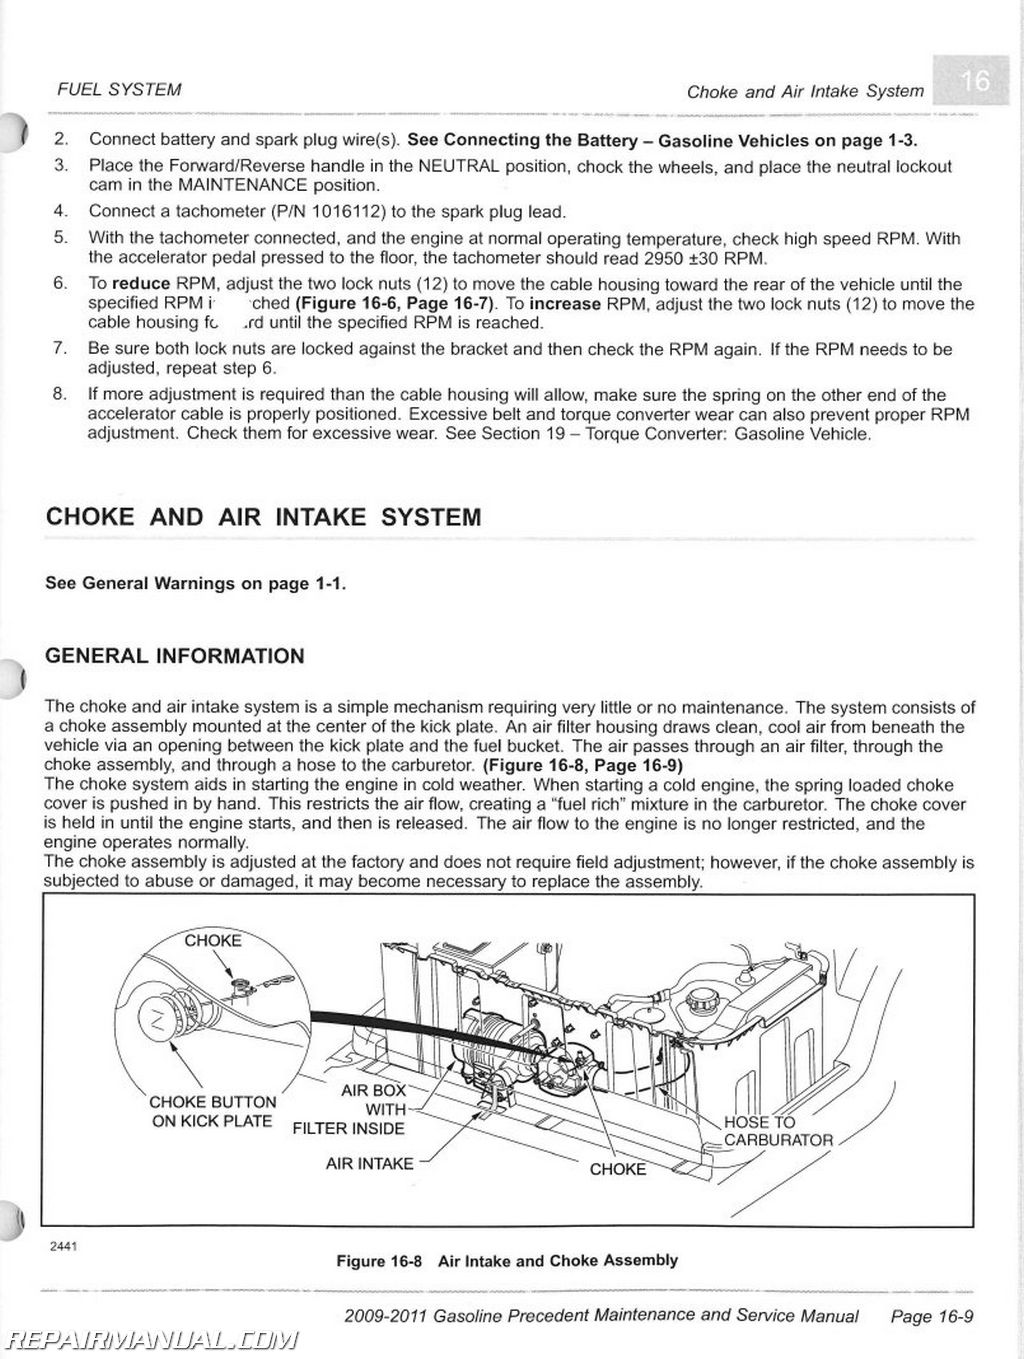 Club Car Engine Parts Diagram Wiring Library General Fuel Pump 2009 2011 Gasoline Precedent Maintenance And Service Manual Rh Repairmanual Com